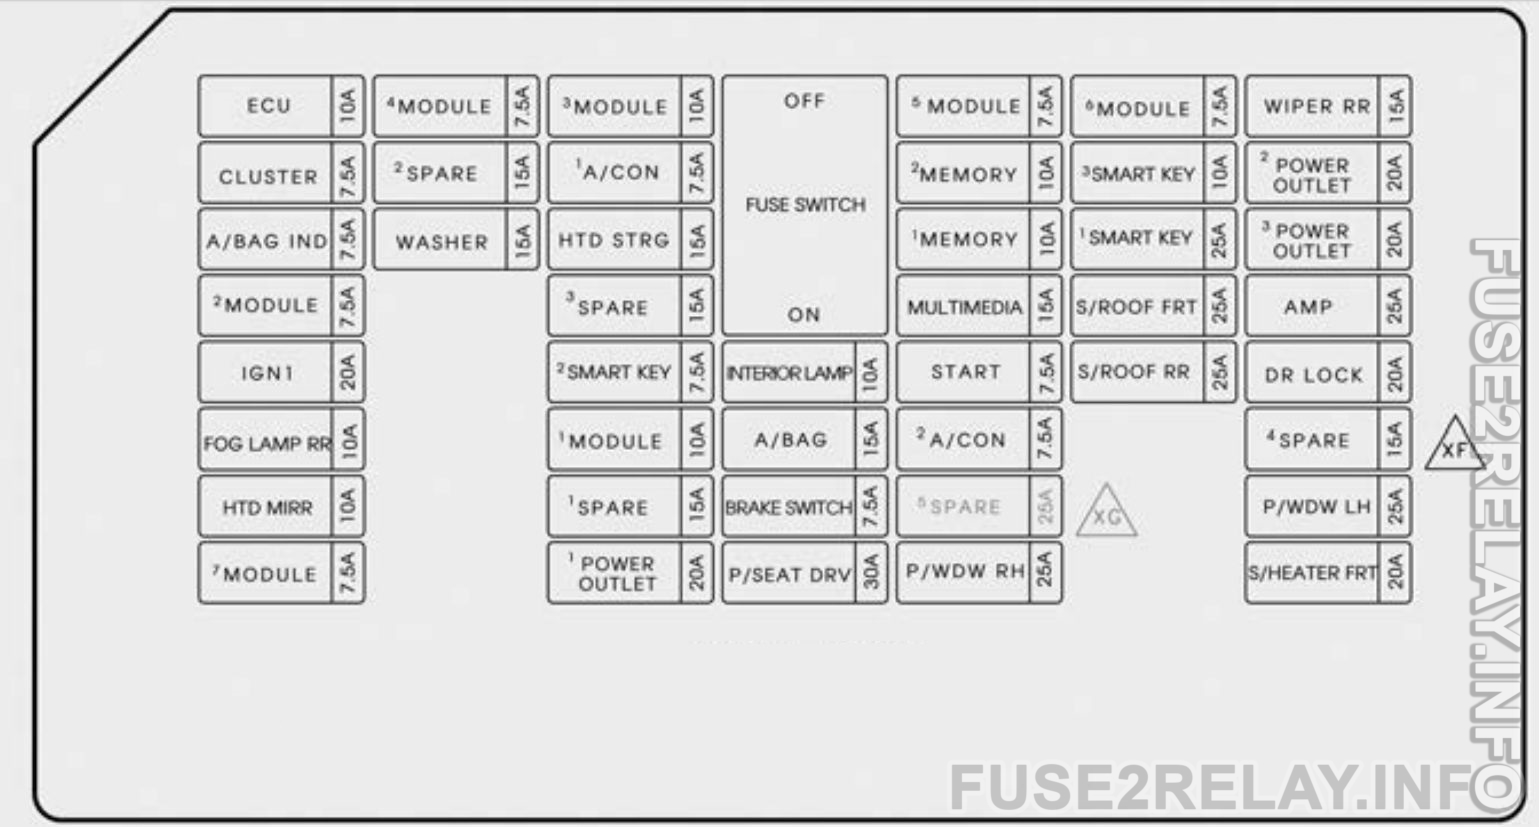 KIA Sedona (2015 - 2018) fuse relay box diagram